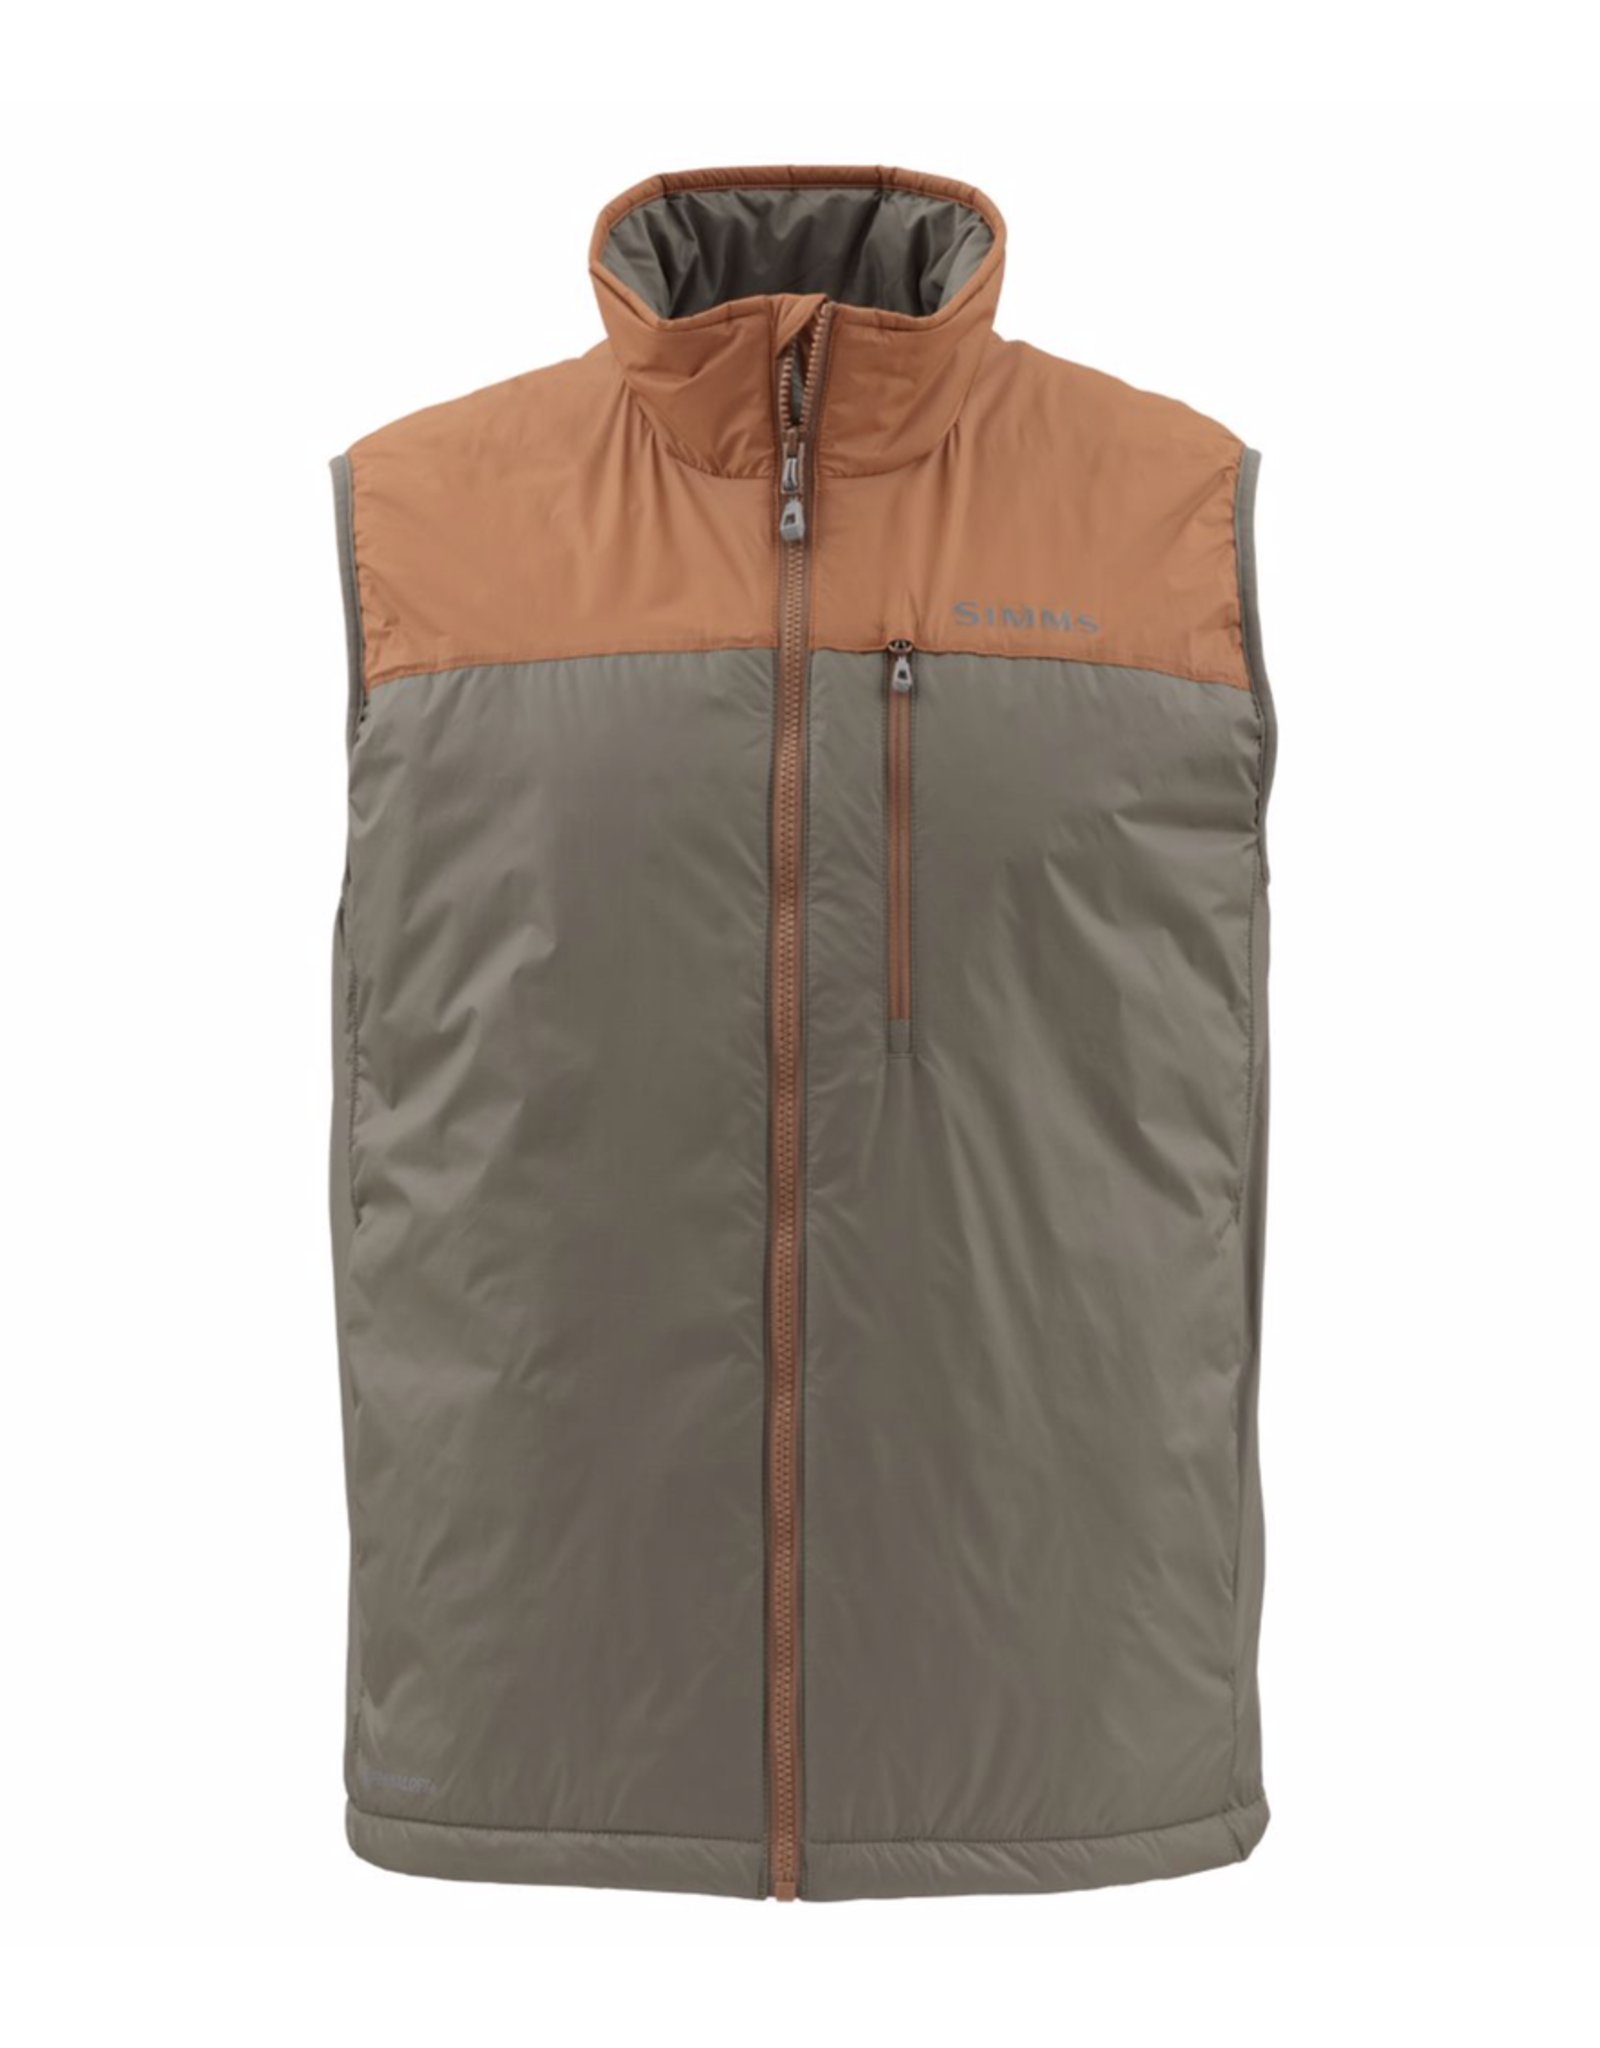 Lightweight PrimaLoft® Gold insulated vest that keeps your core temperature intact with the best warmth-to-weight ratio on the water.